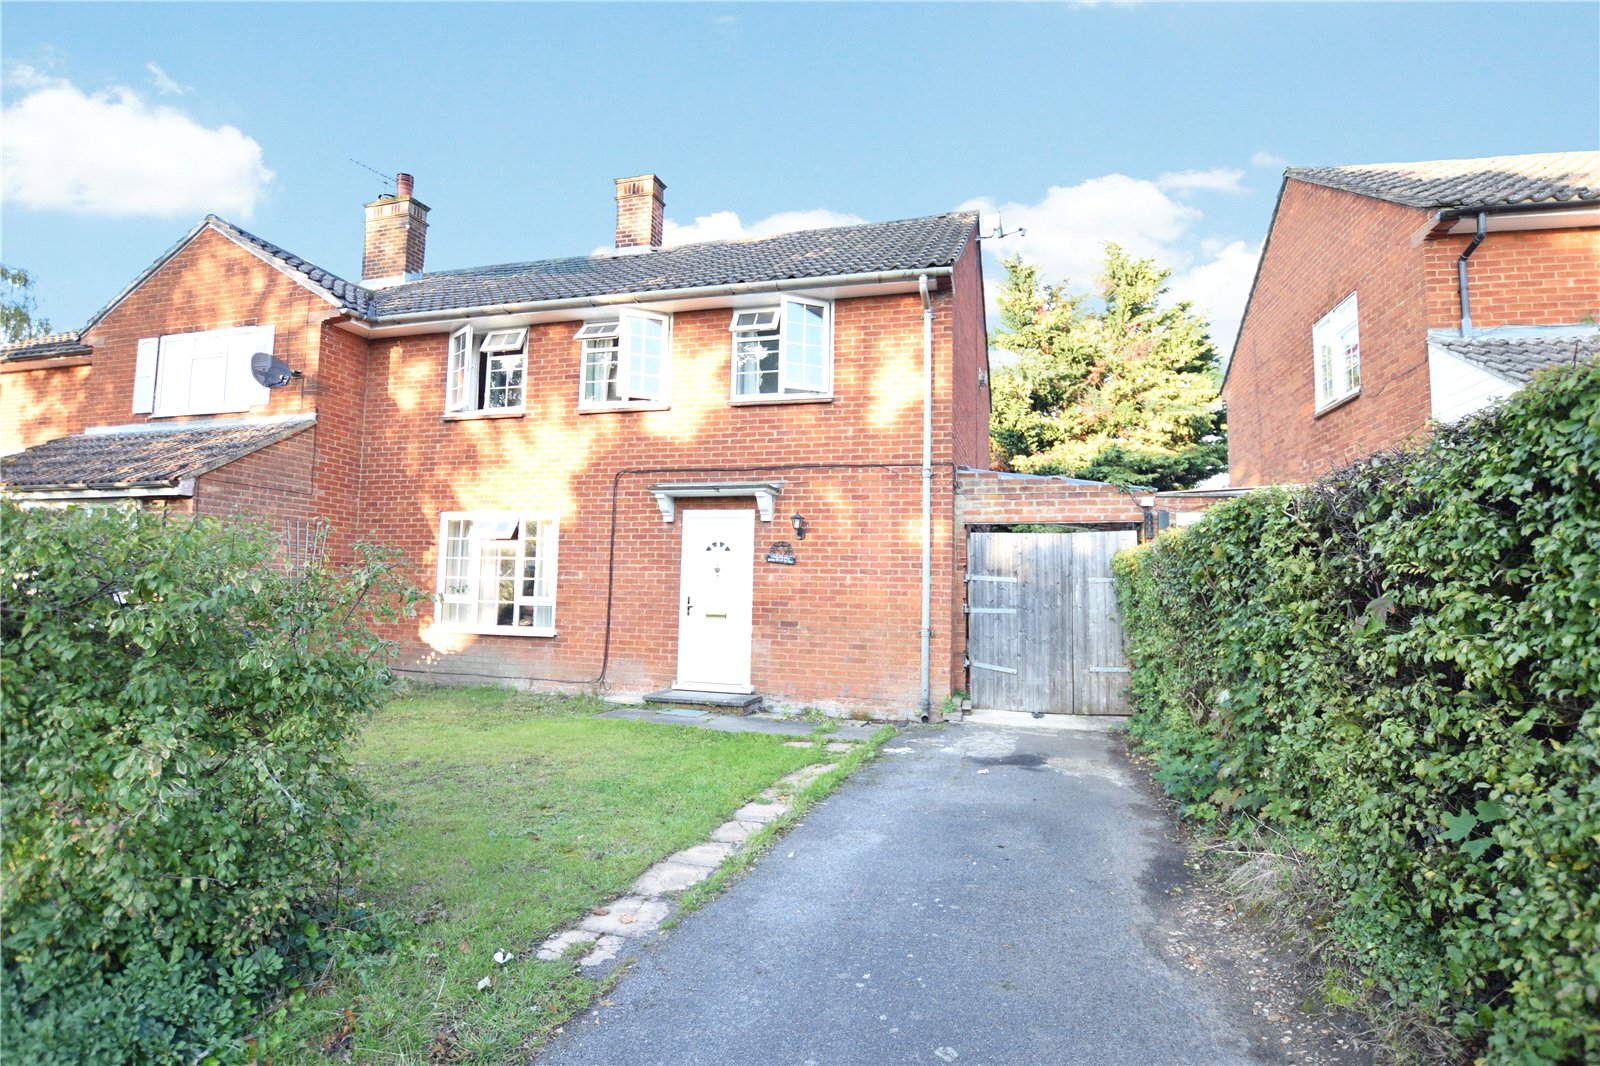 3 Bedrooms Semi Detached House for sale in Crowthorne Road, Bracknell, Berkshire, RG12